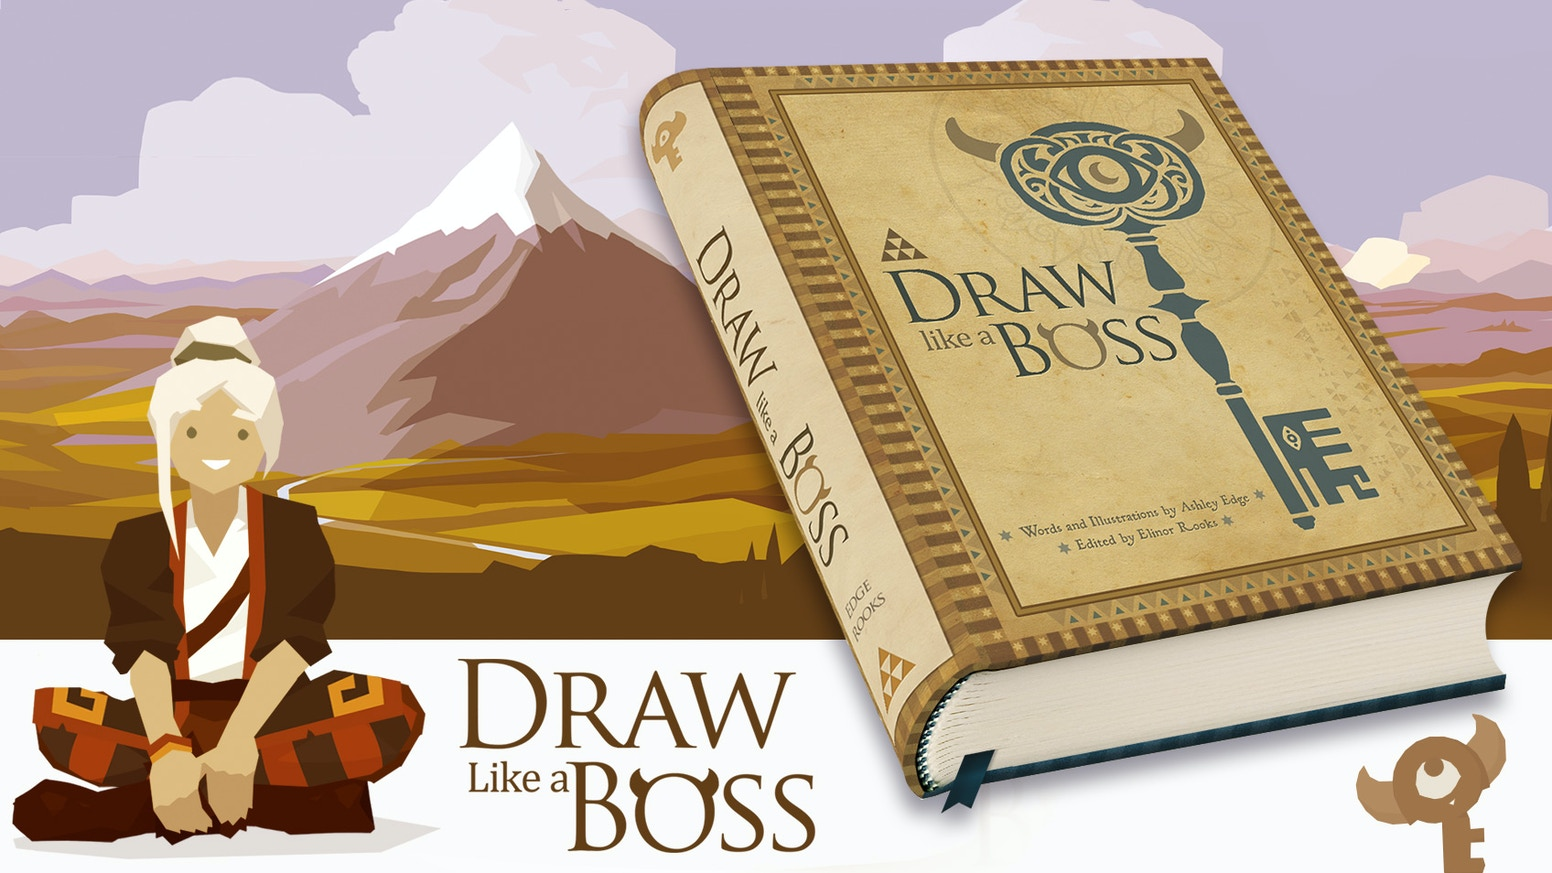 Gamified method for learning to draw. Narrative driven, highly visual book that is guaranteed to teach and inspire you.